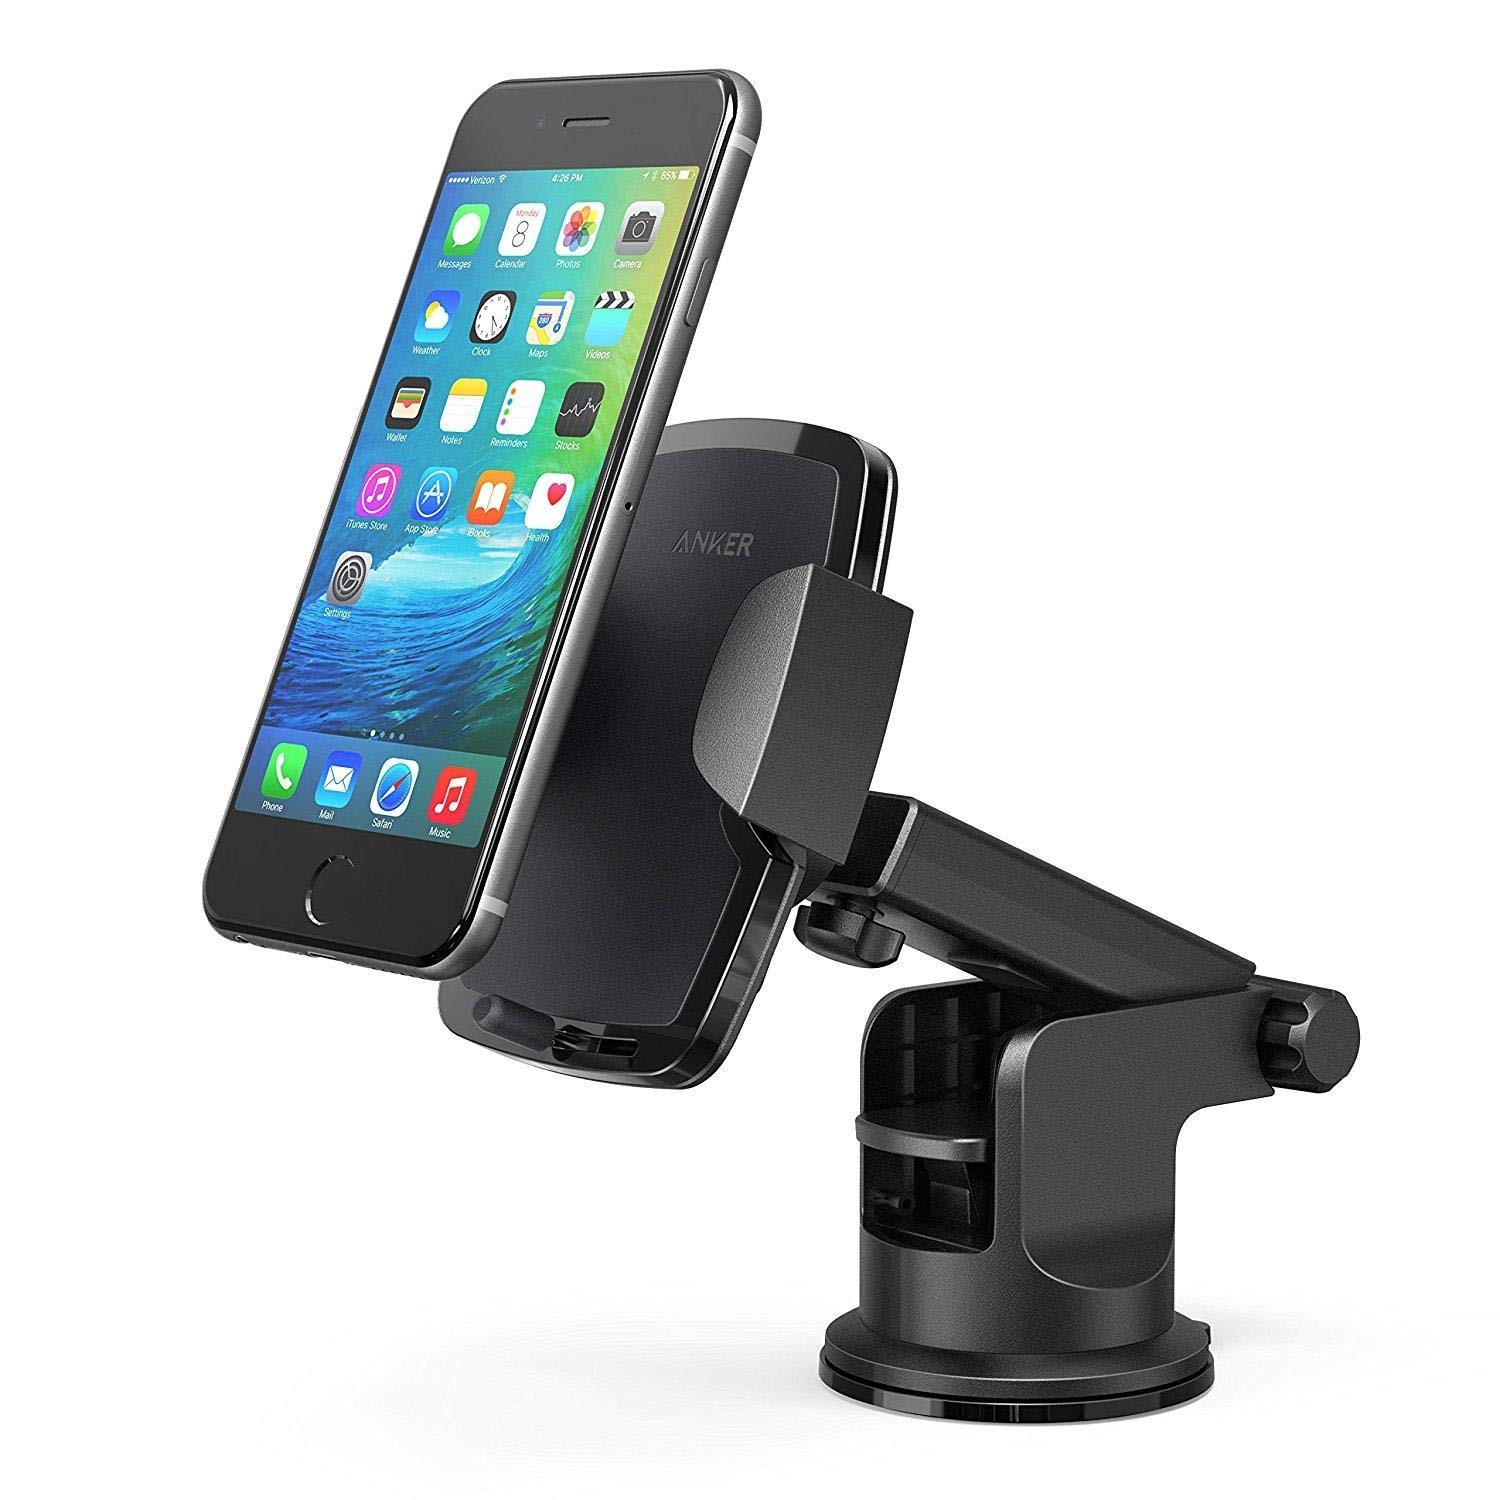 Car Air Vent Mount Cradle Holder Stand For iPhone 6S Galaxy S7 S6 Note 5 4 HTC